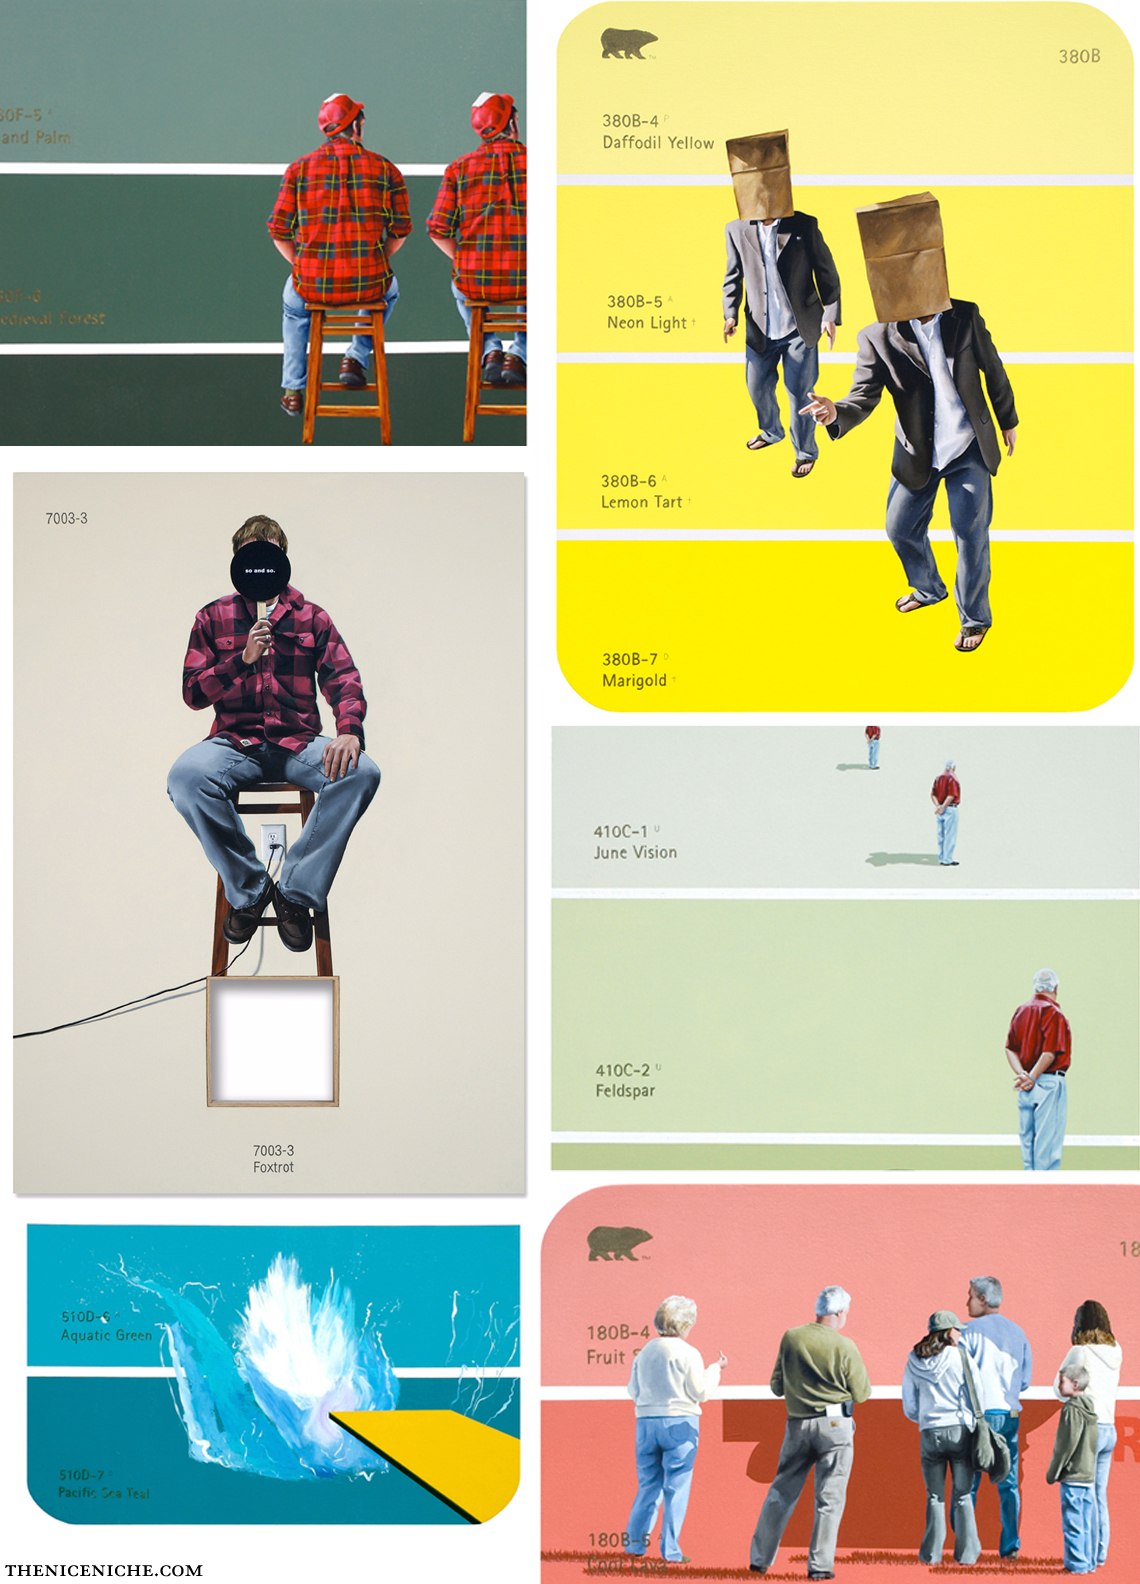 Shawn Huckins Nice Niche Feature